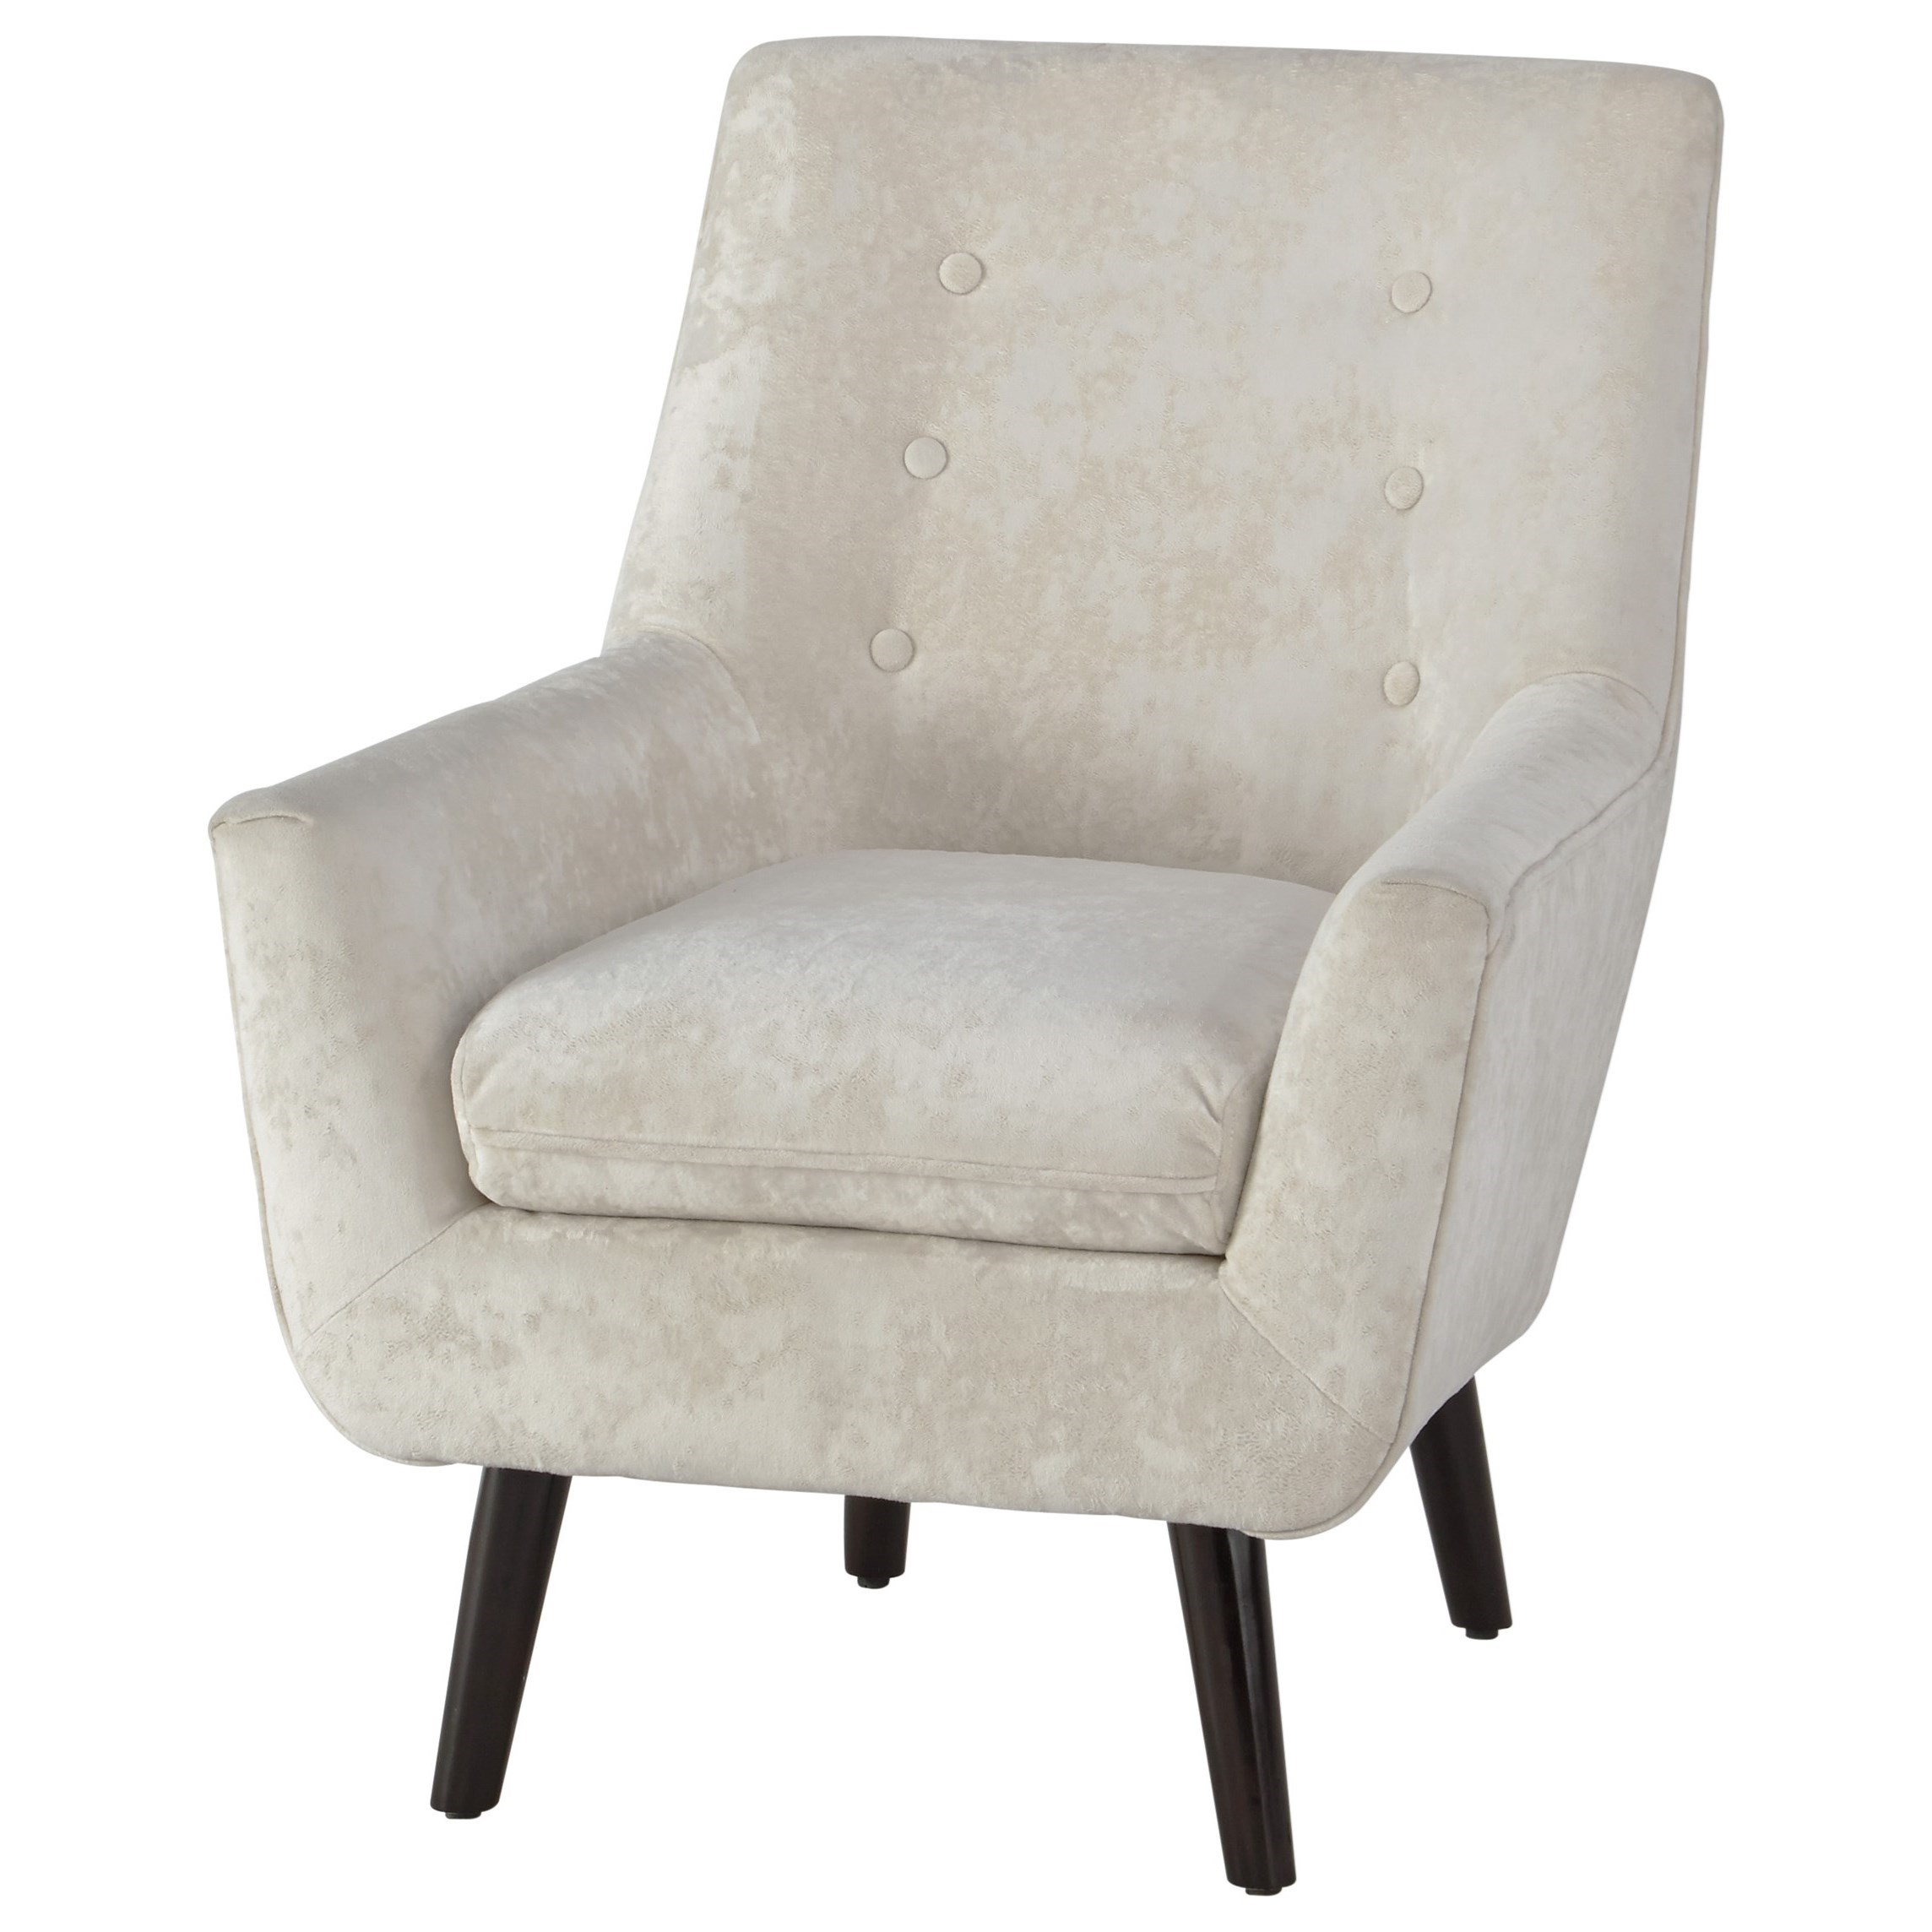 Ashley Signature Design Zossen A3000045 Mid Century Modern Accent Chair In Ivory Crushed Velvet Dunk Bright Furniture Upholstered Chairs